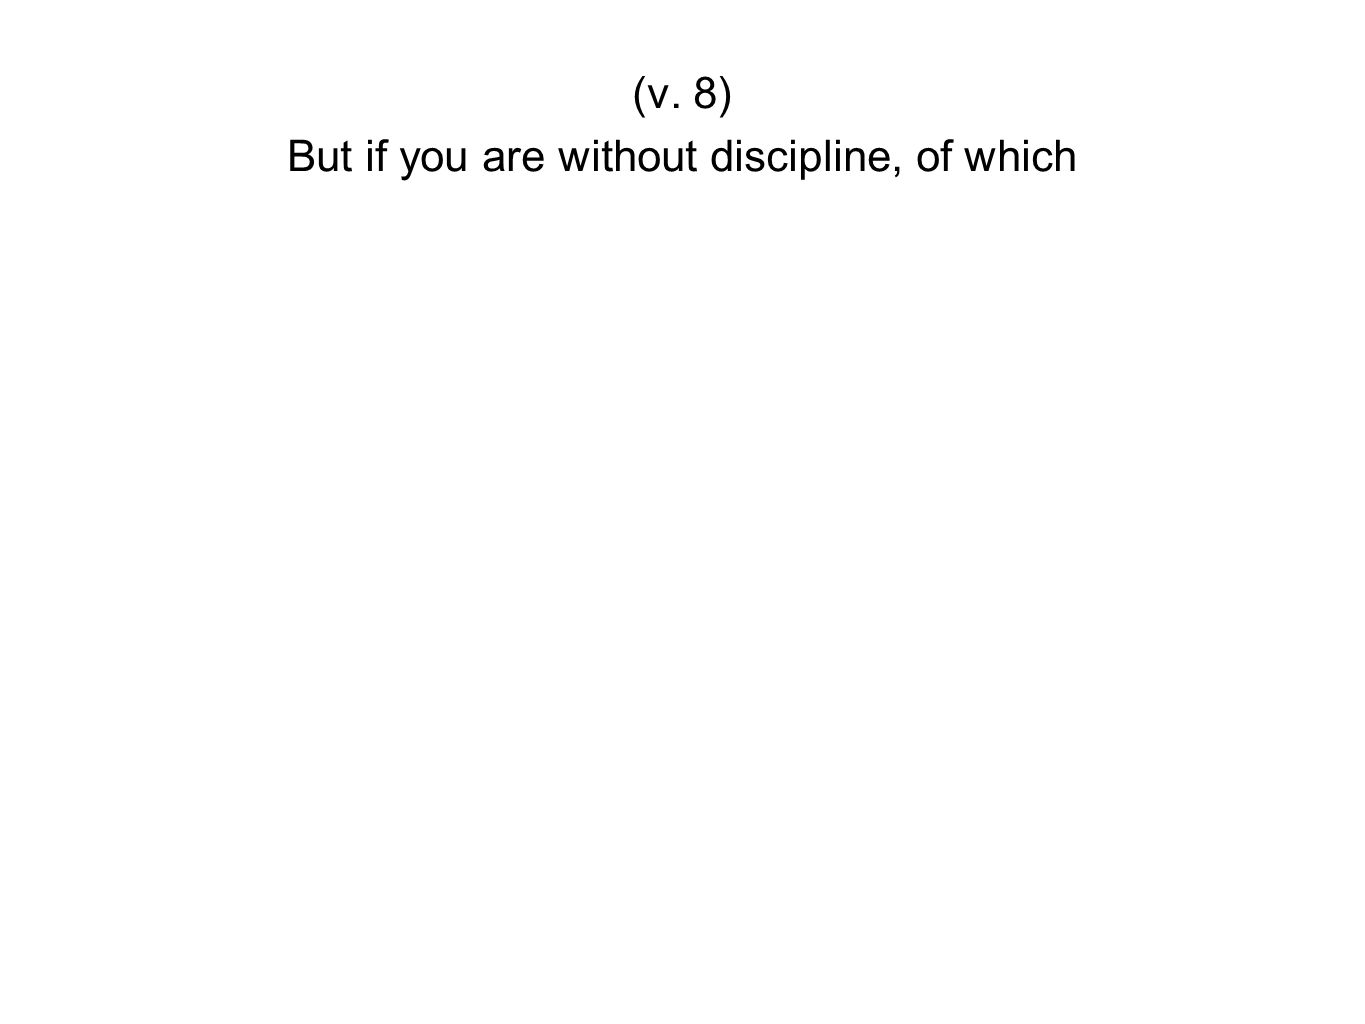 But if you are without discipline, of which